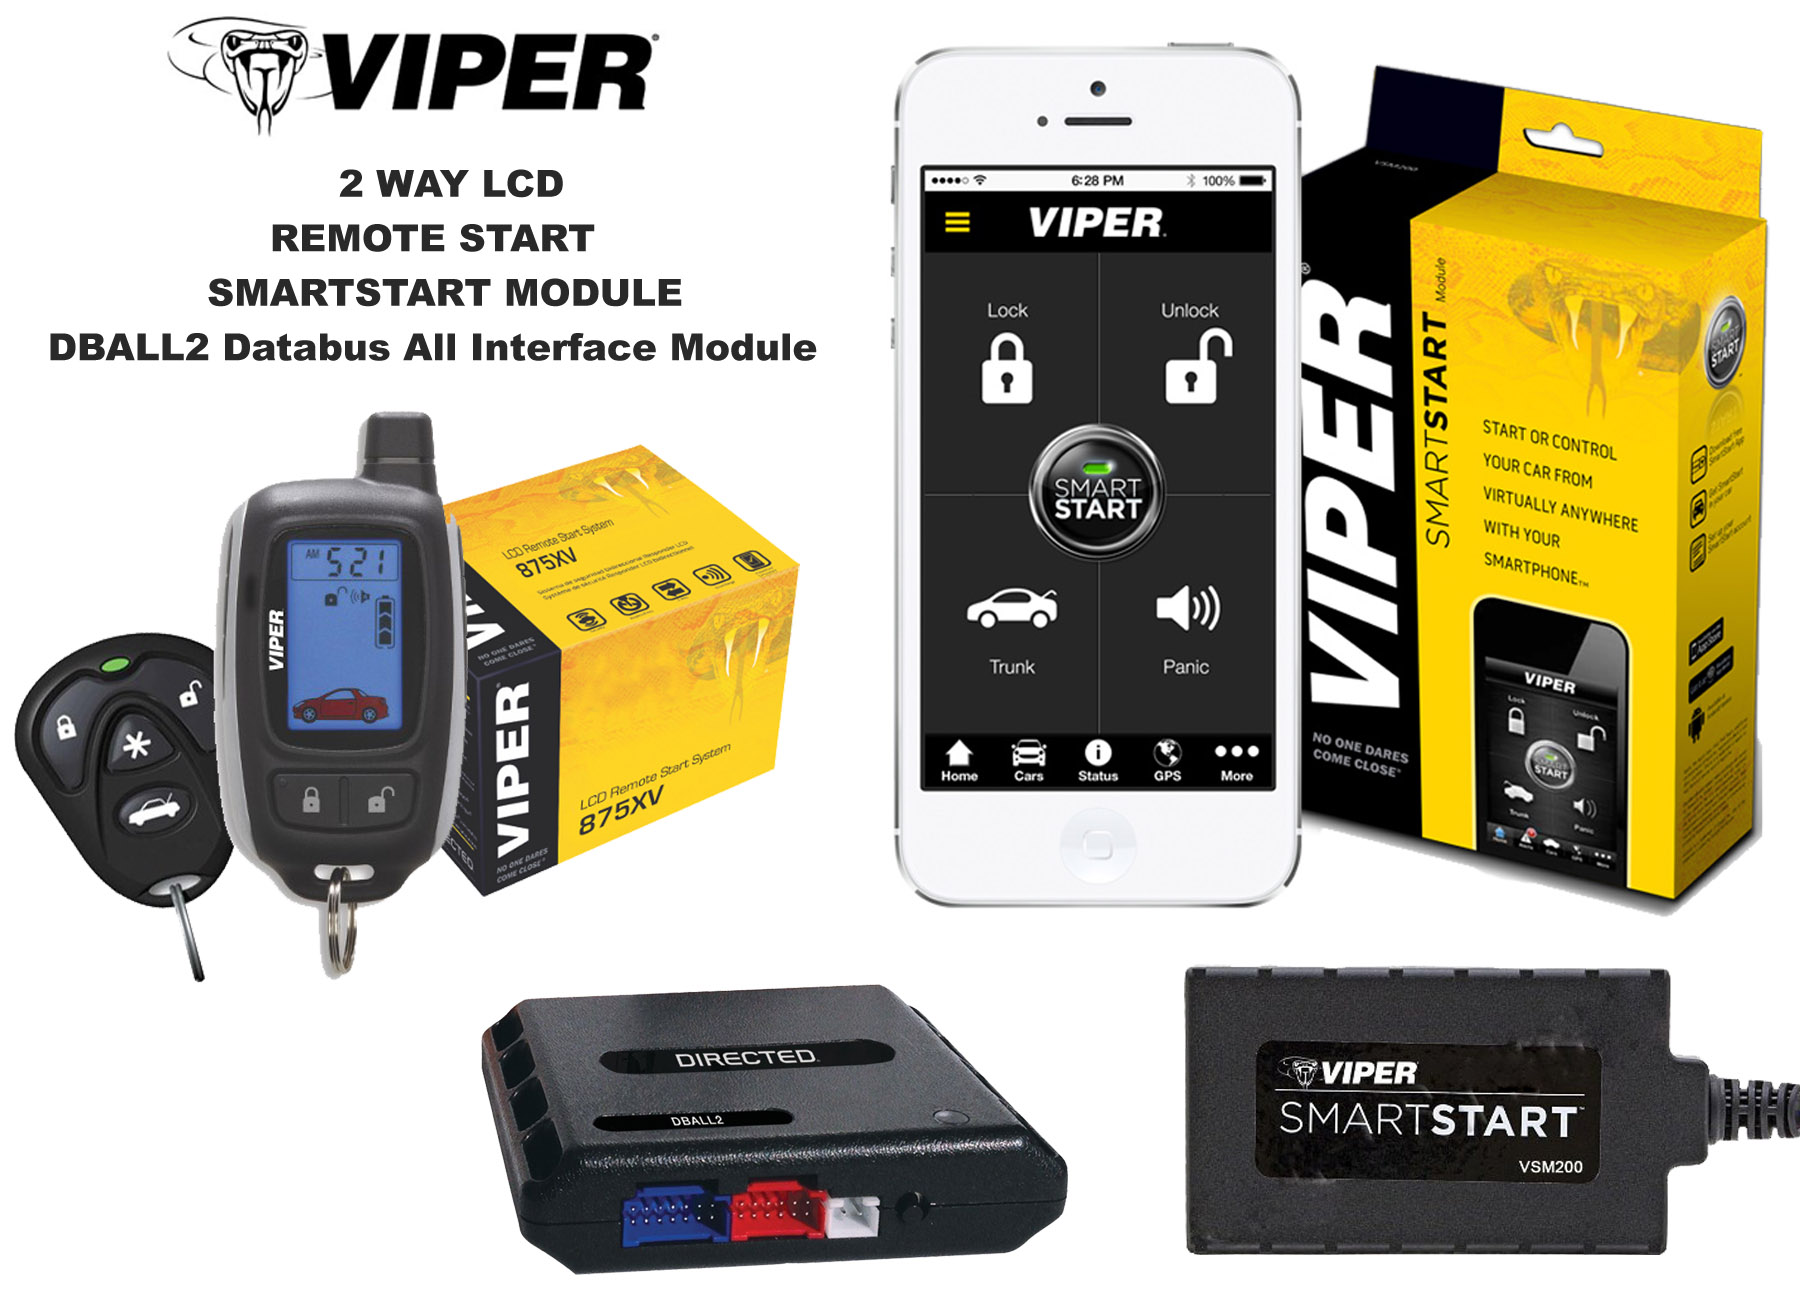 dball2 wiring diagram dball2 image wiring diagram viper 875xv lcd remote start system dball2 bypass module amp on dball2 wiring diagram